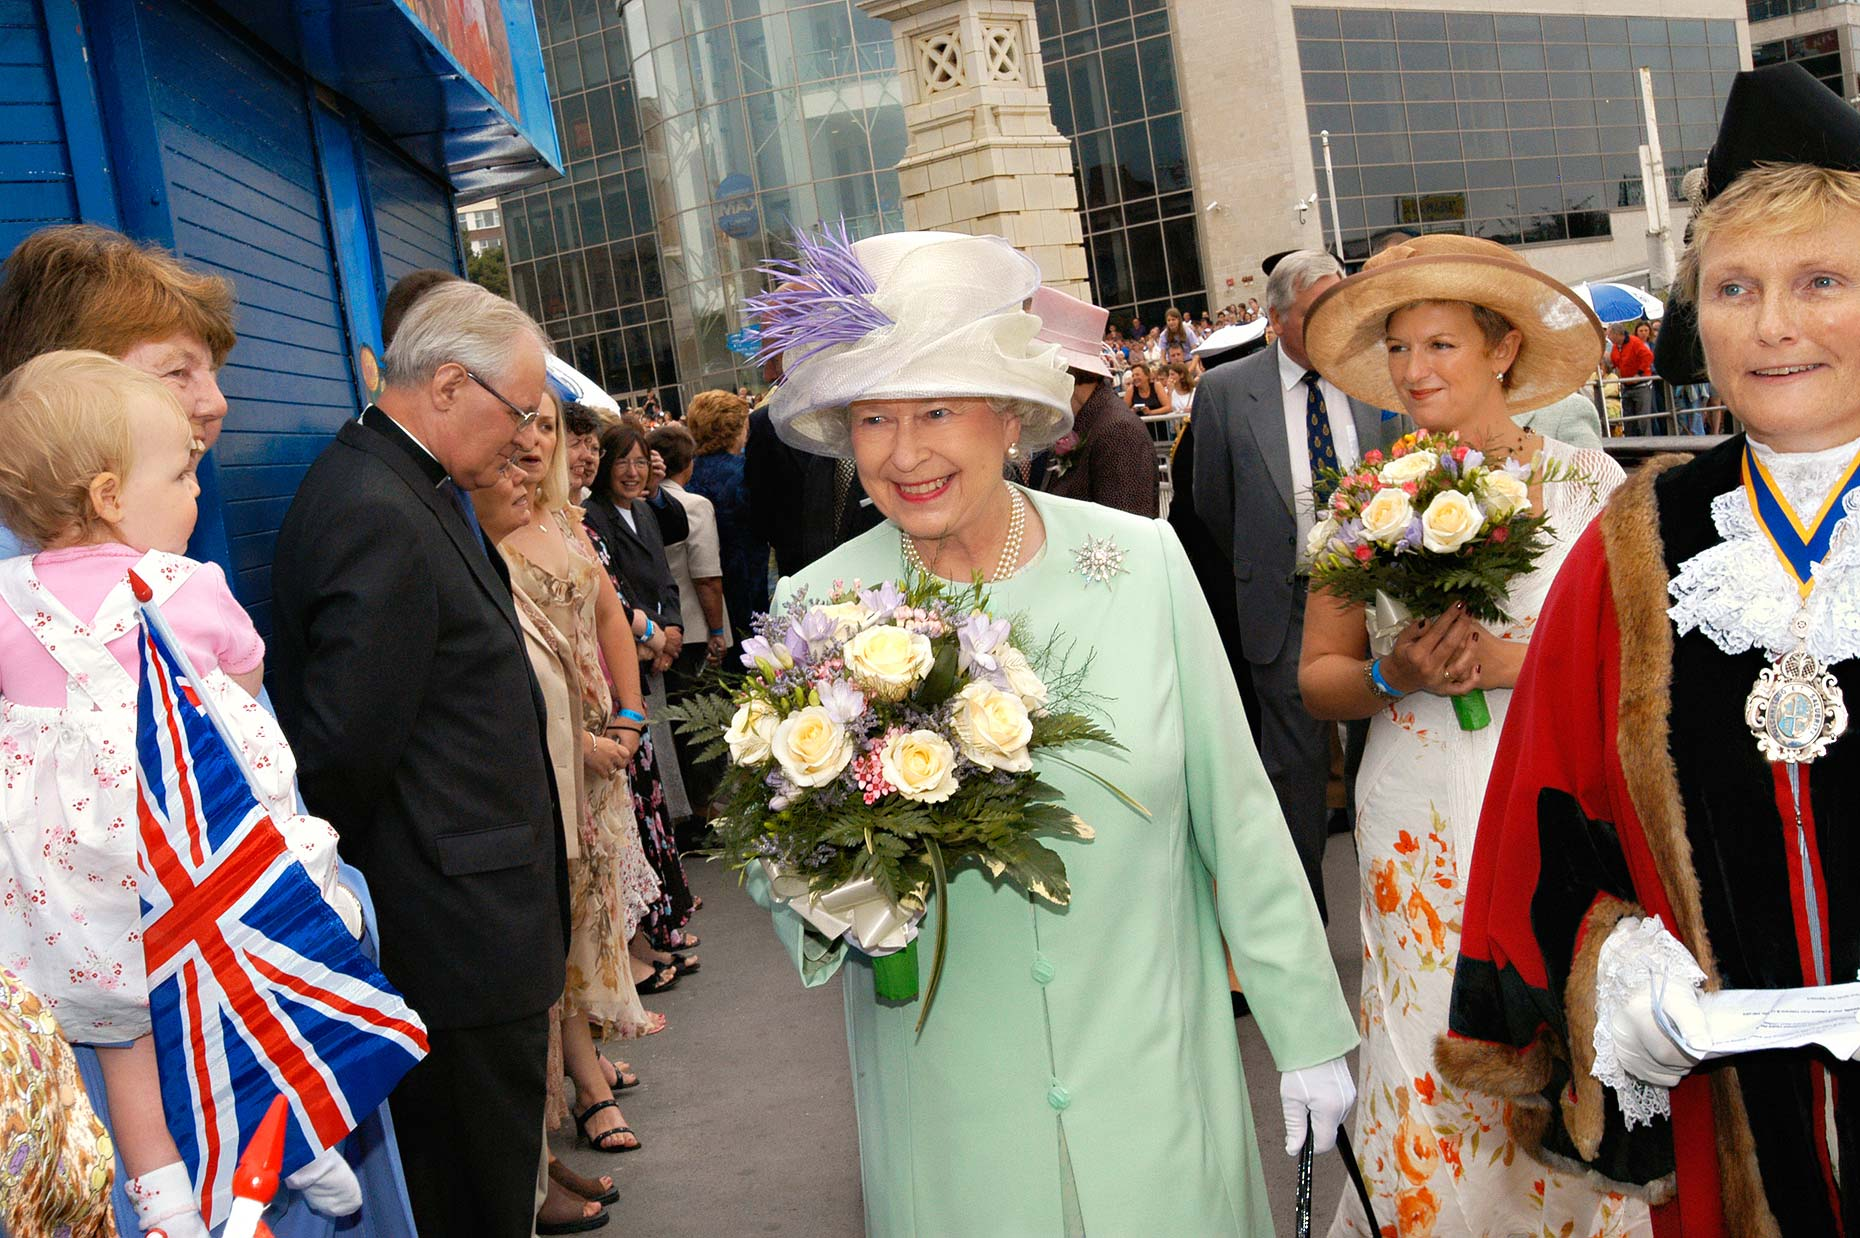 0989 The-Queen-visit-Bournemouth-Pier-PR-and-Corporate.jpg